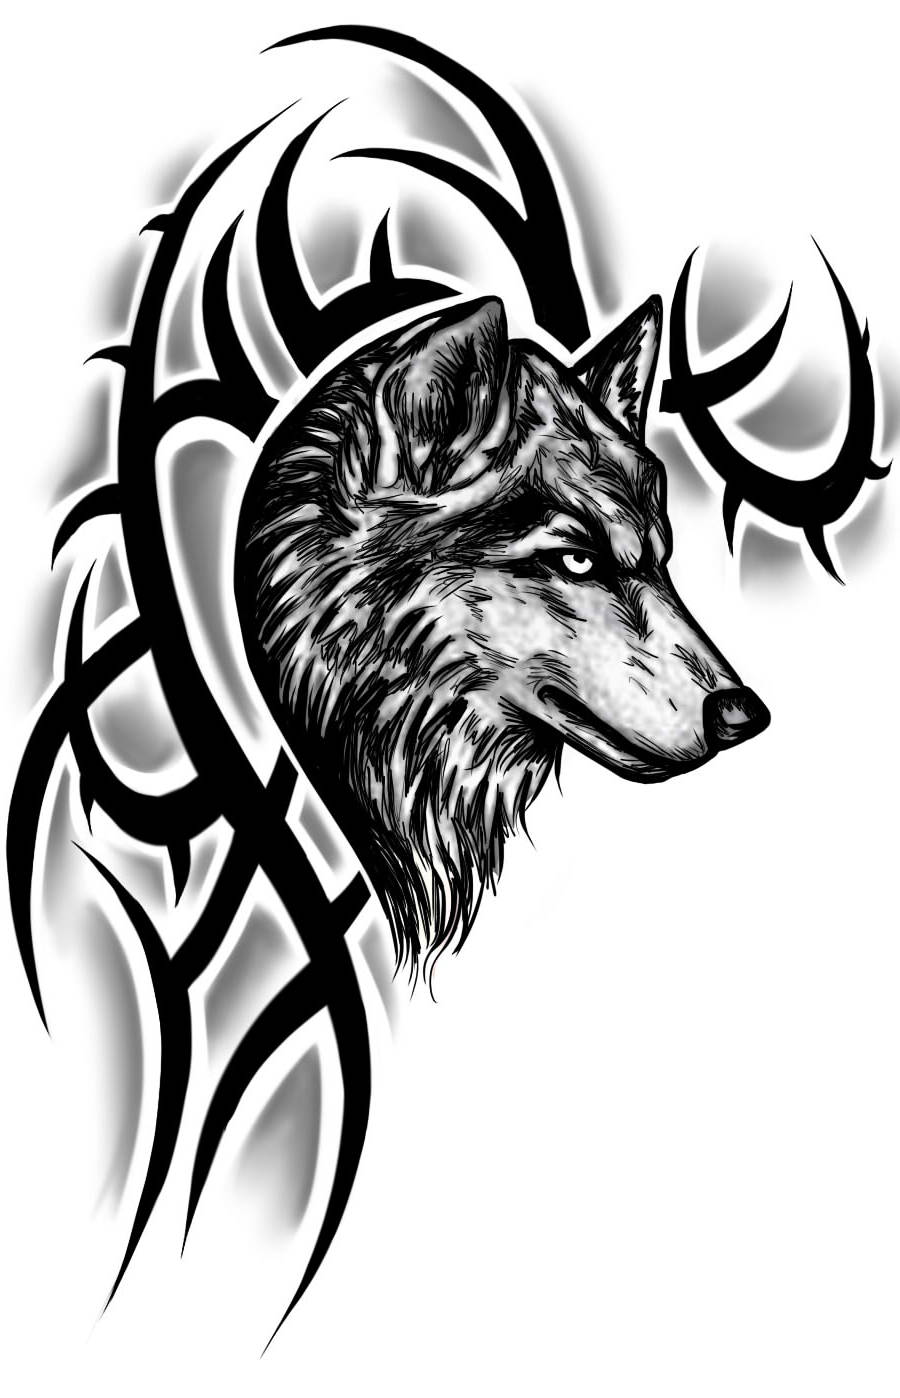 18 howling wolf tattoo designs images and photos. Black Bedroom Furniture Sets. Home Design Ideas